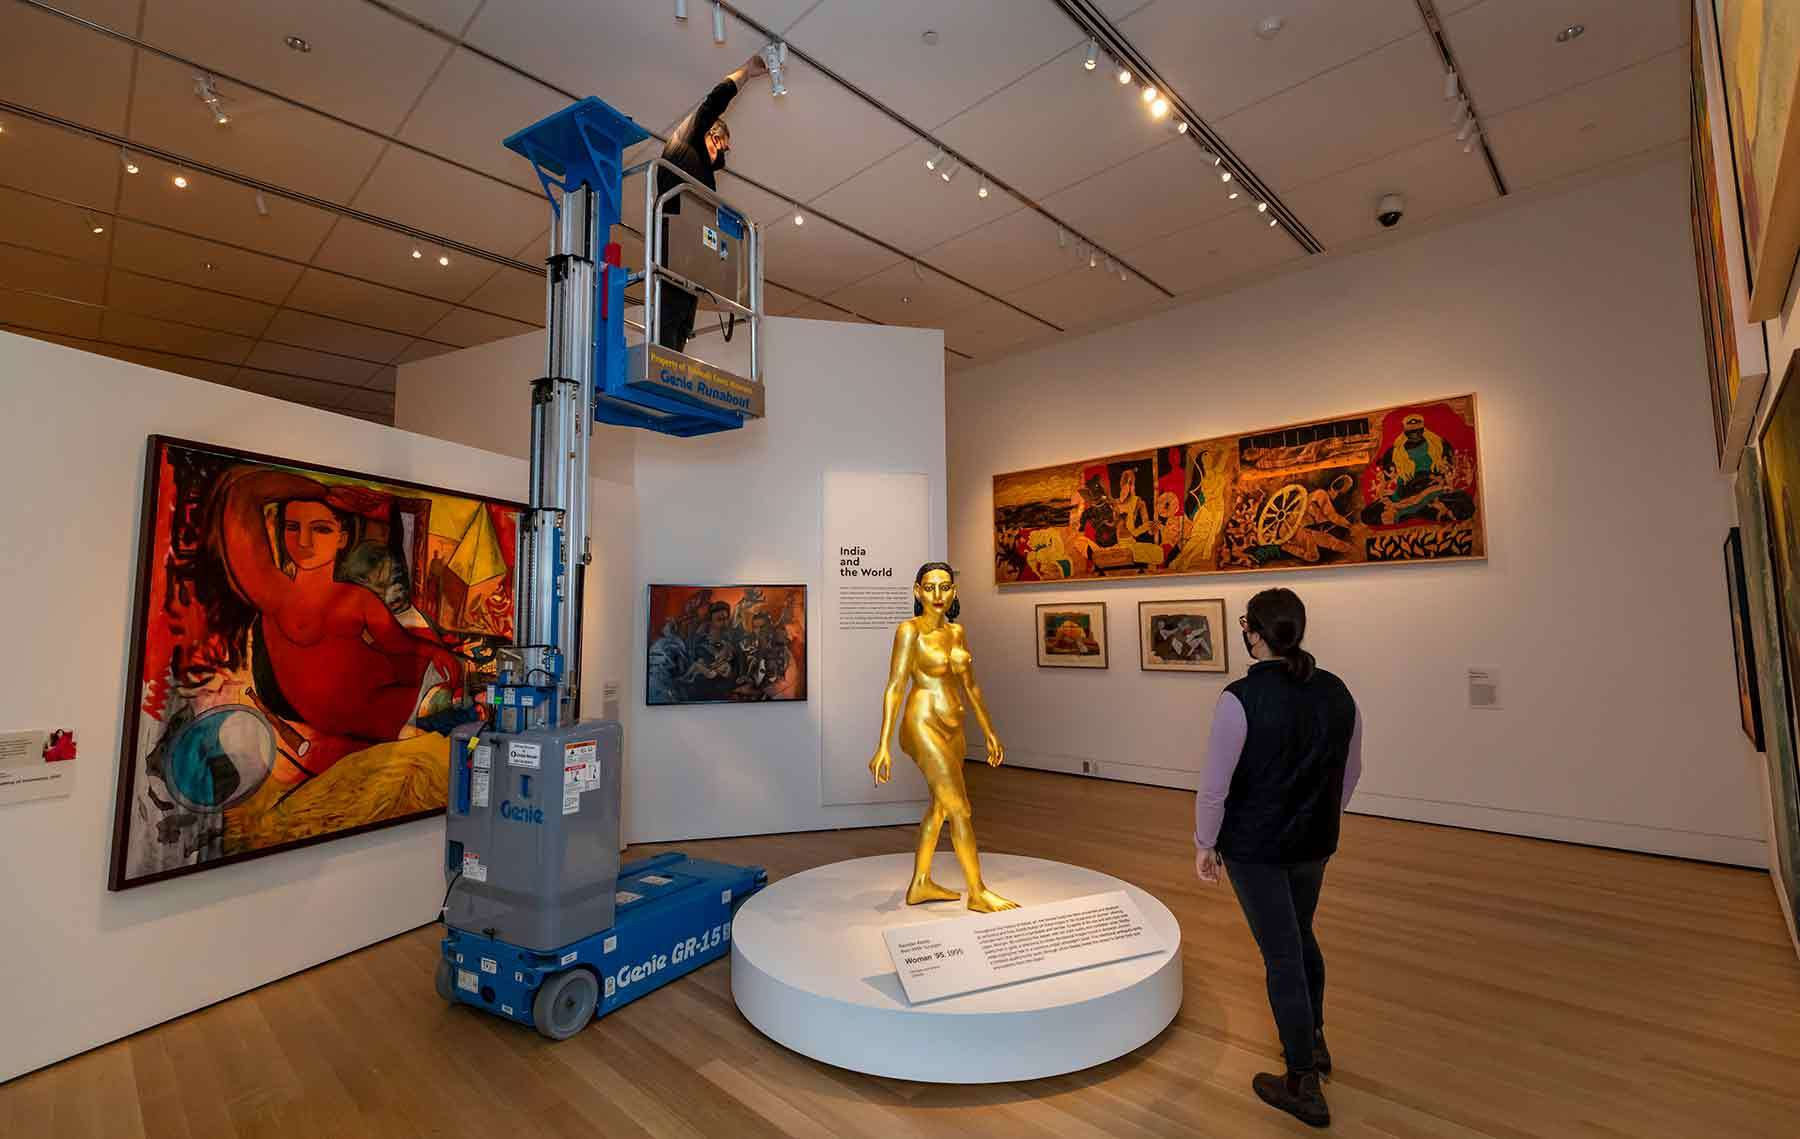 The South Asian Art Gallery displays brightly colored paintings and three dimensional objects. Photo by Kathy Tarantola/PEM.